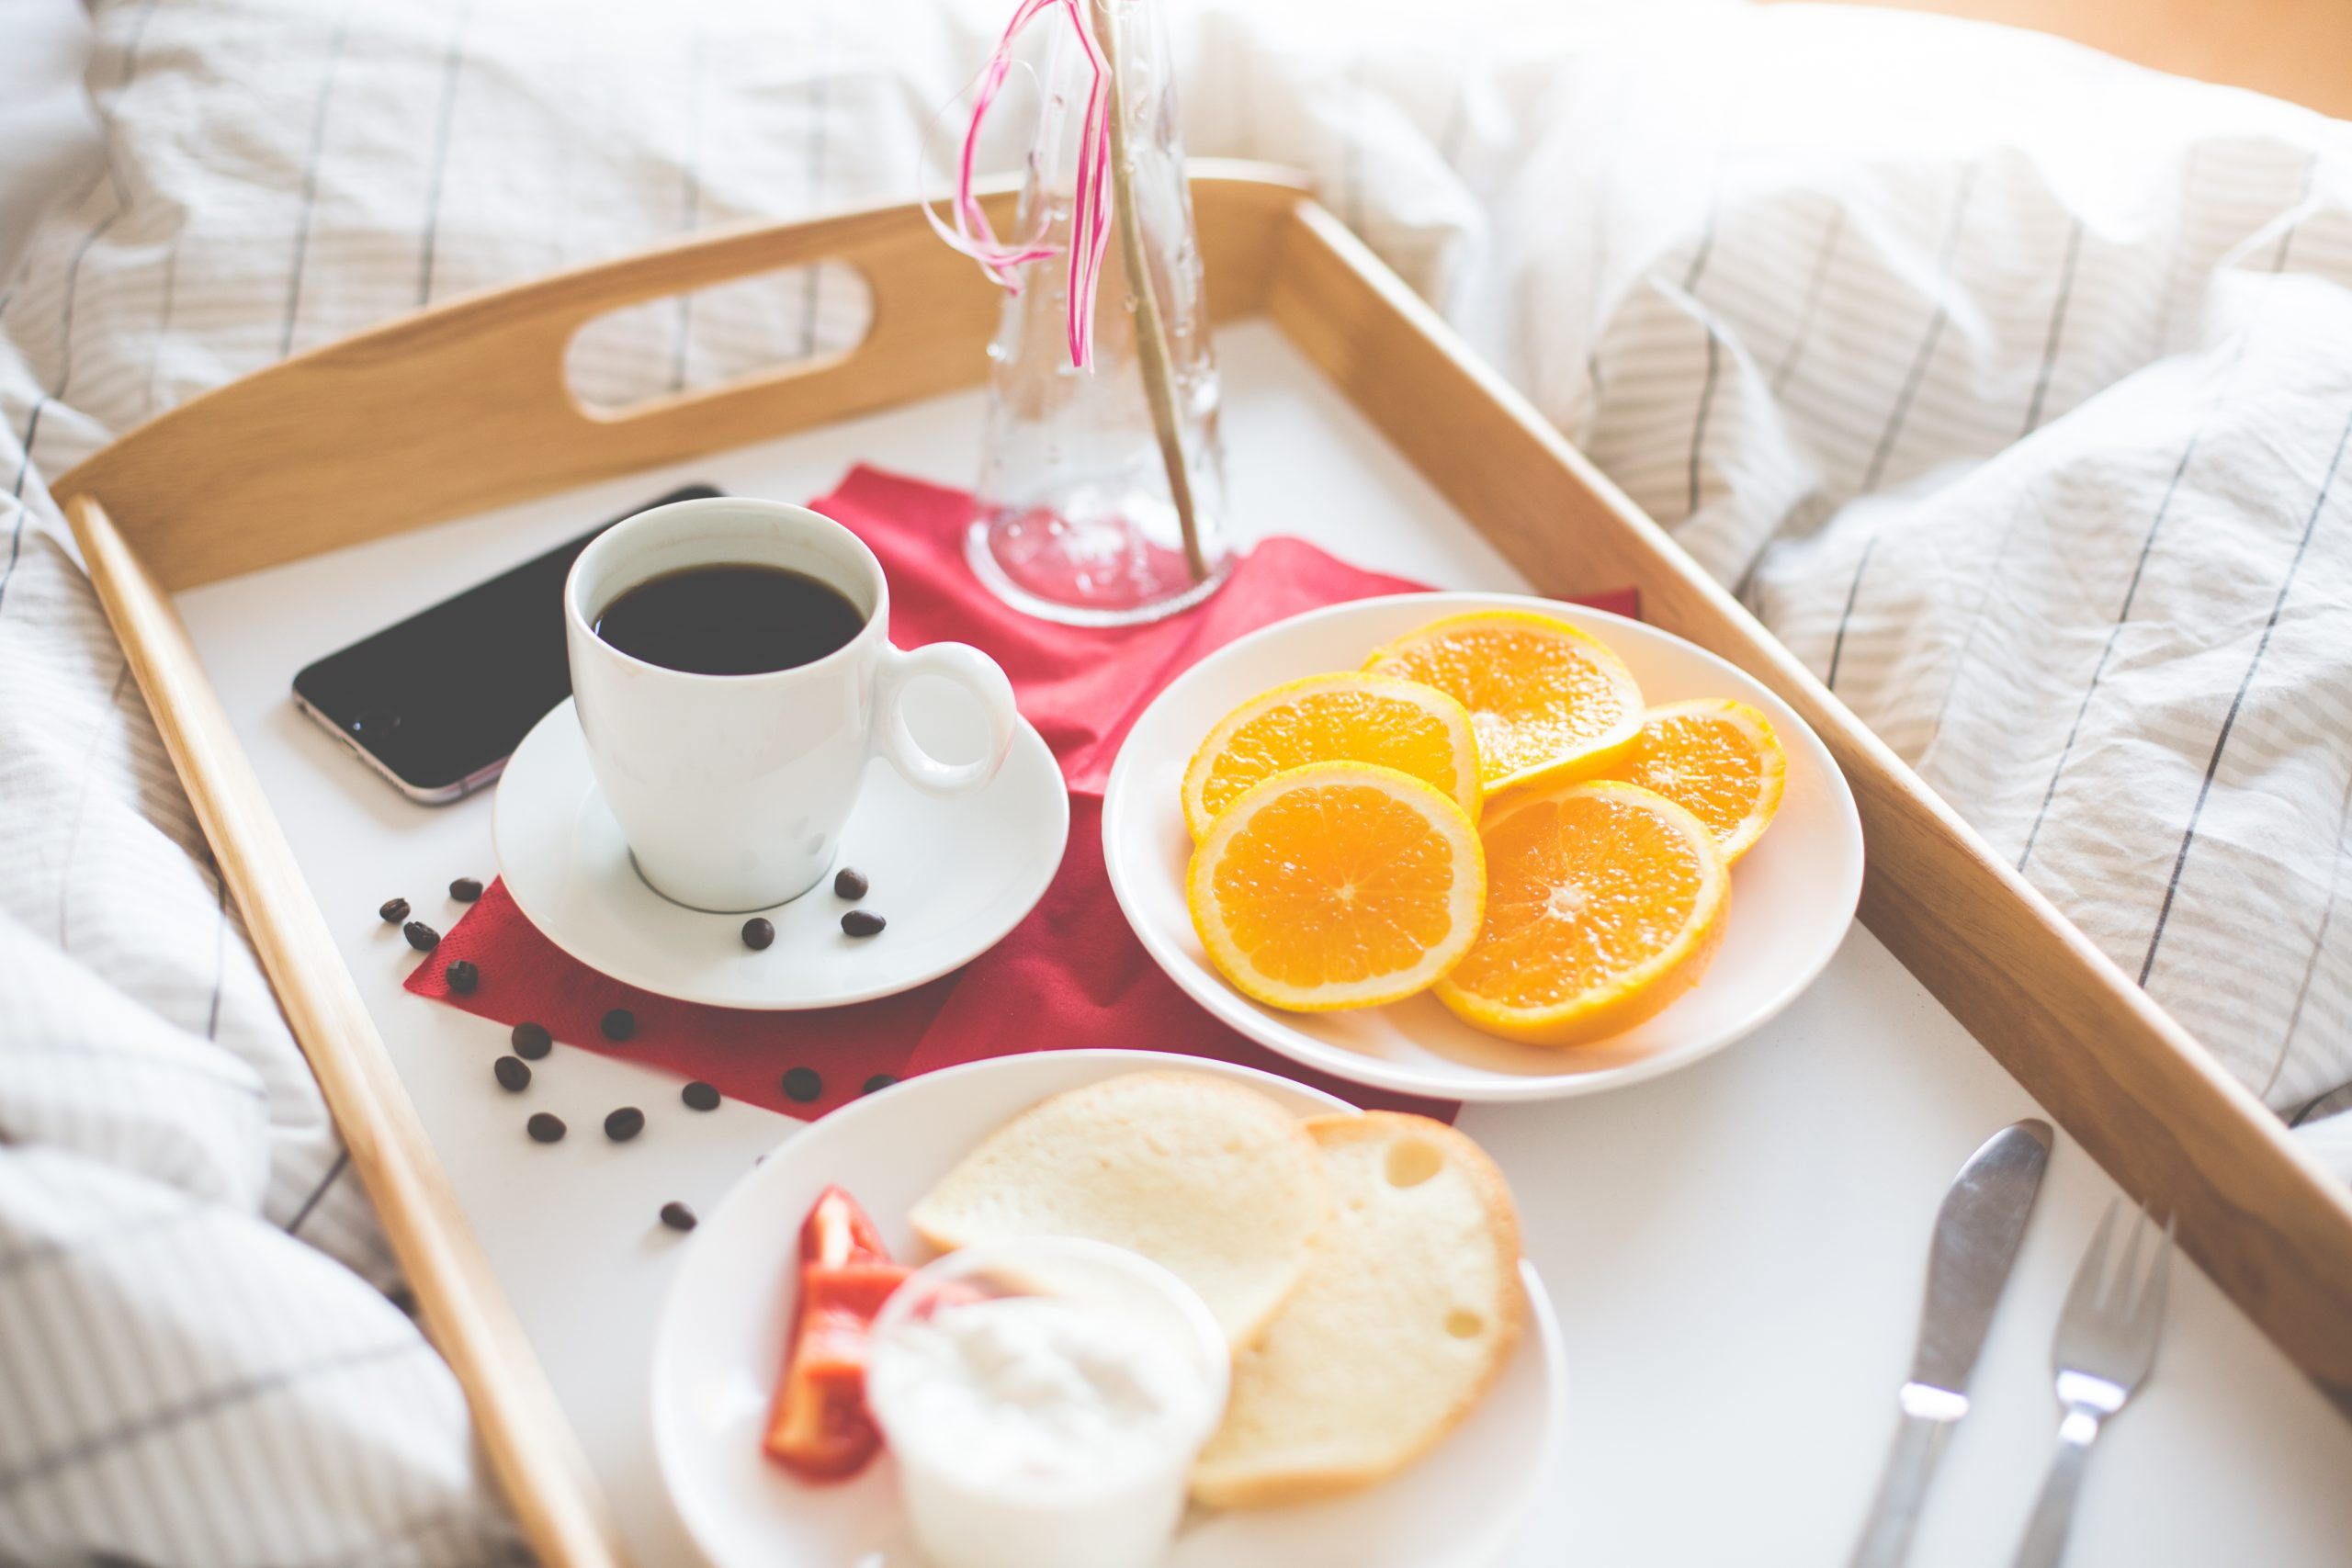 A breakfast tray